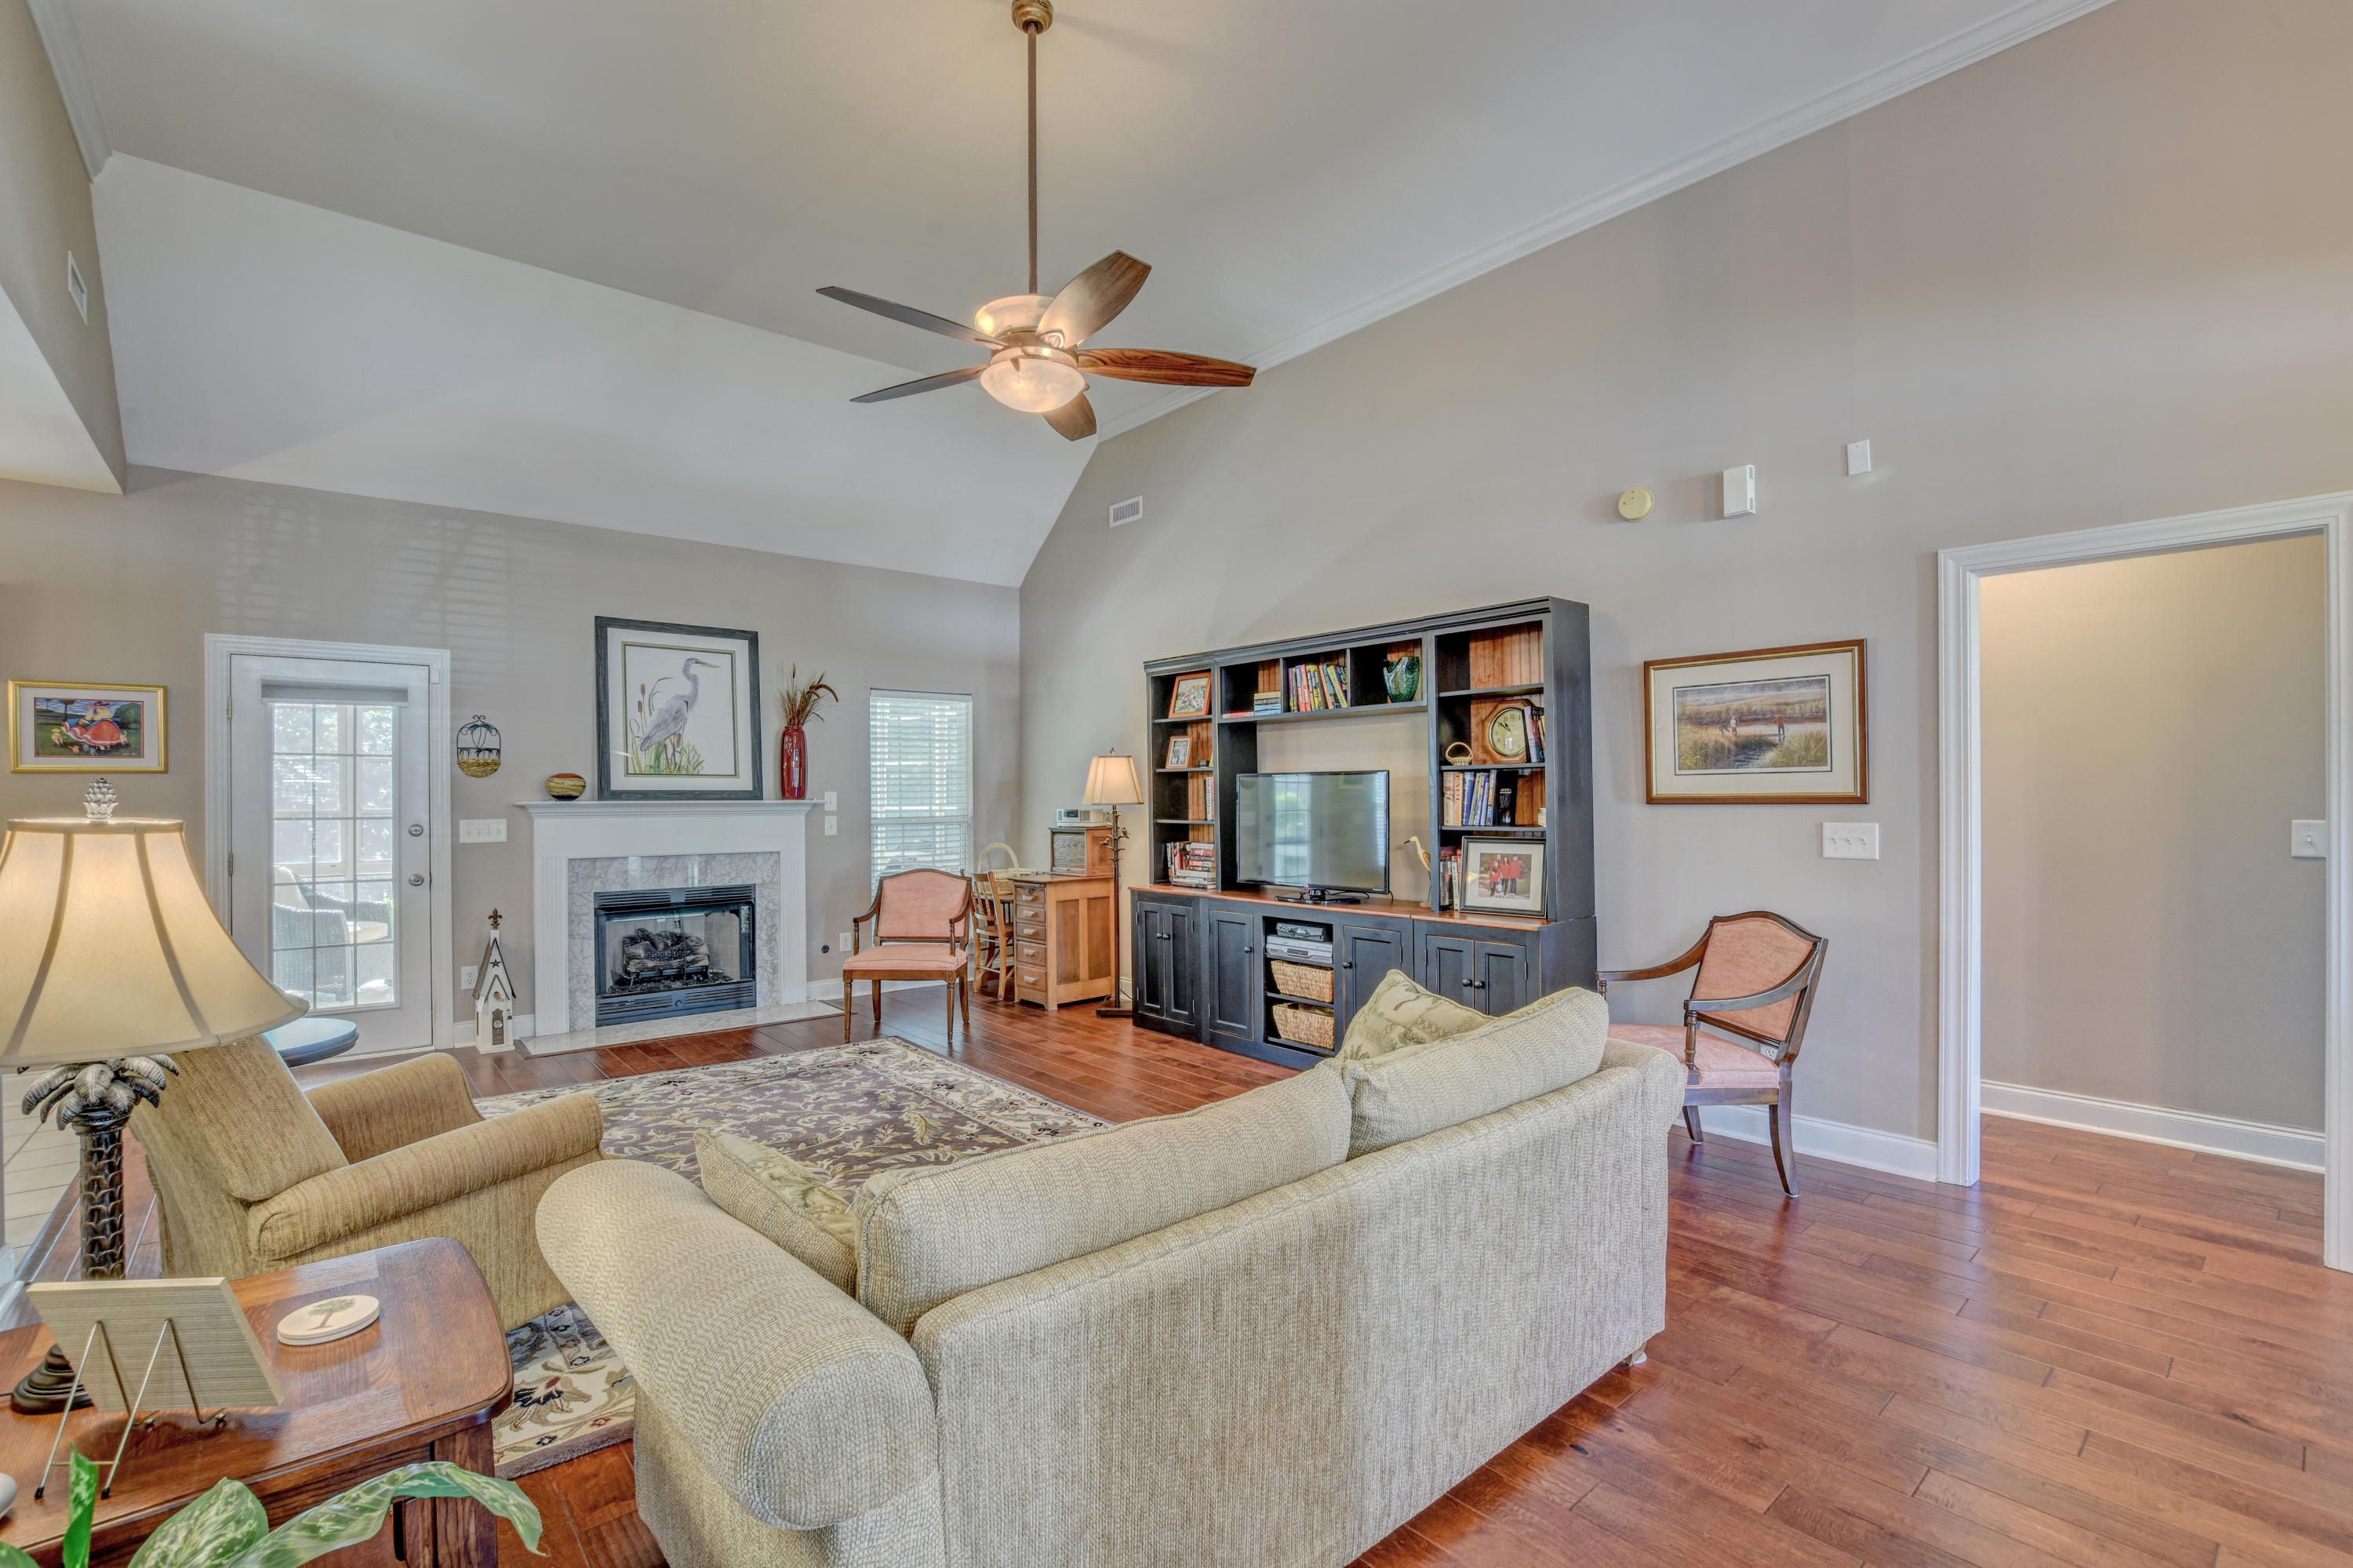 Pine Forest Country Club Homes For Sale - 108 Horseshoe Bay, Summerville, SC - 22